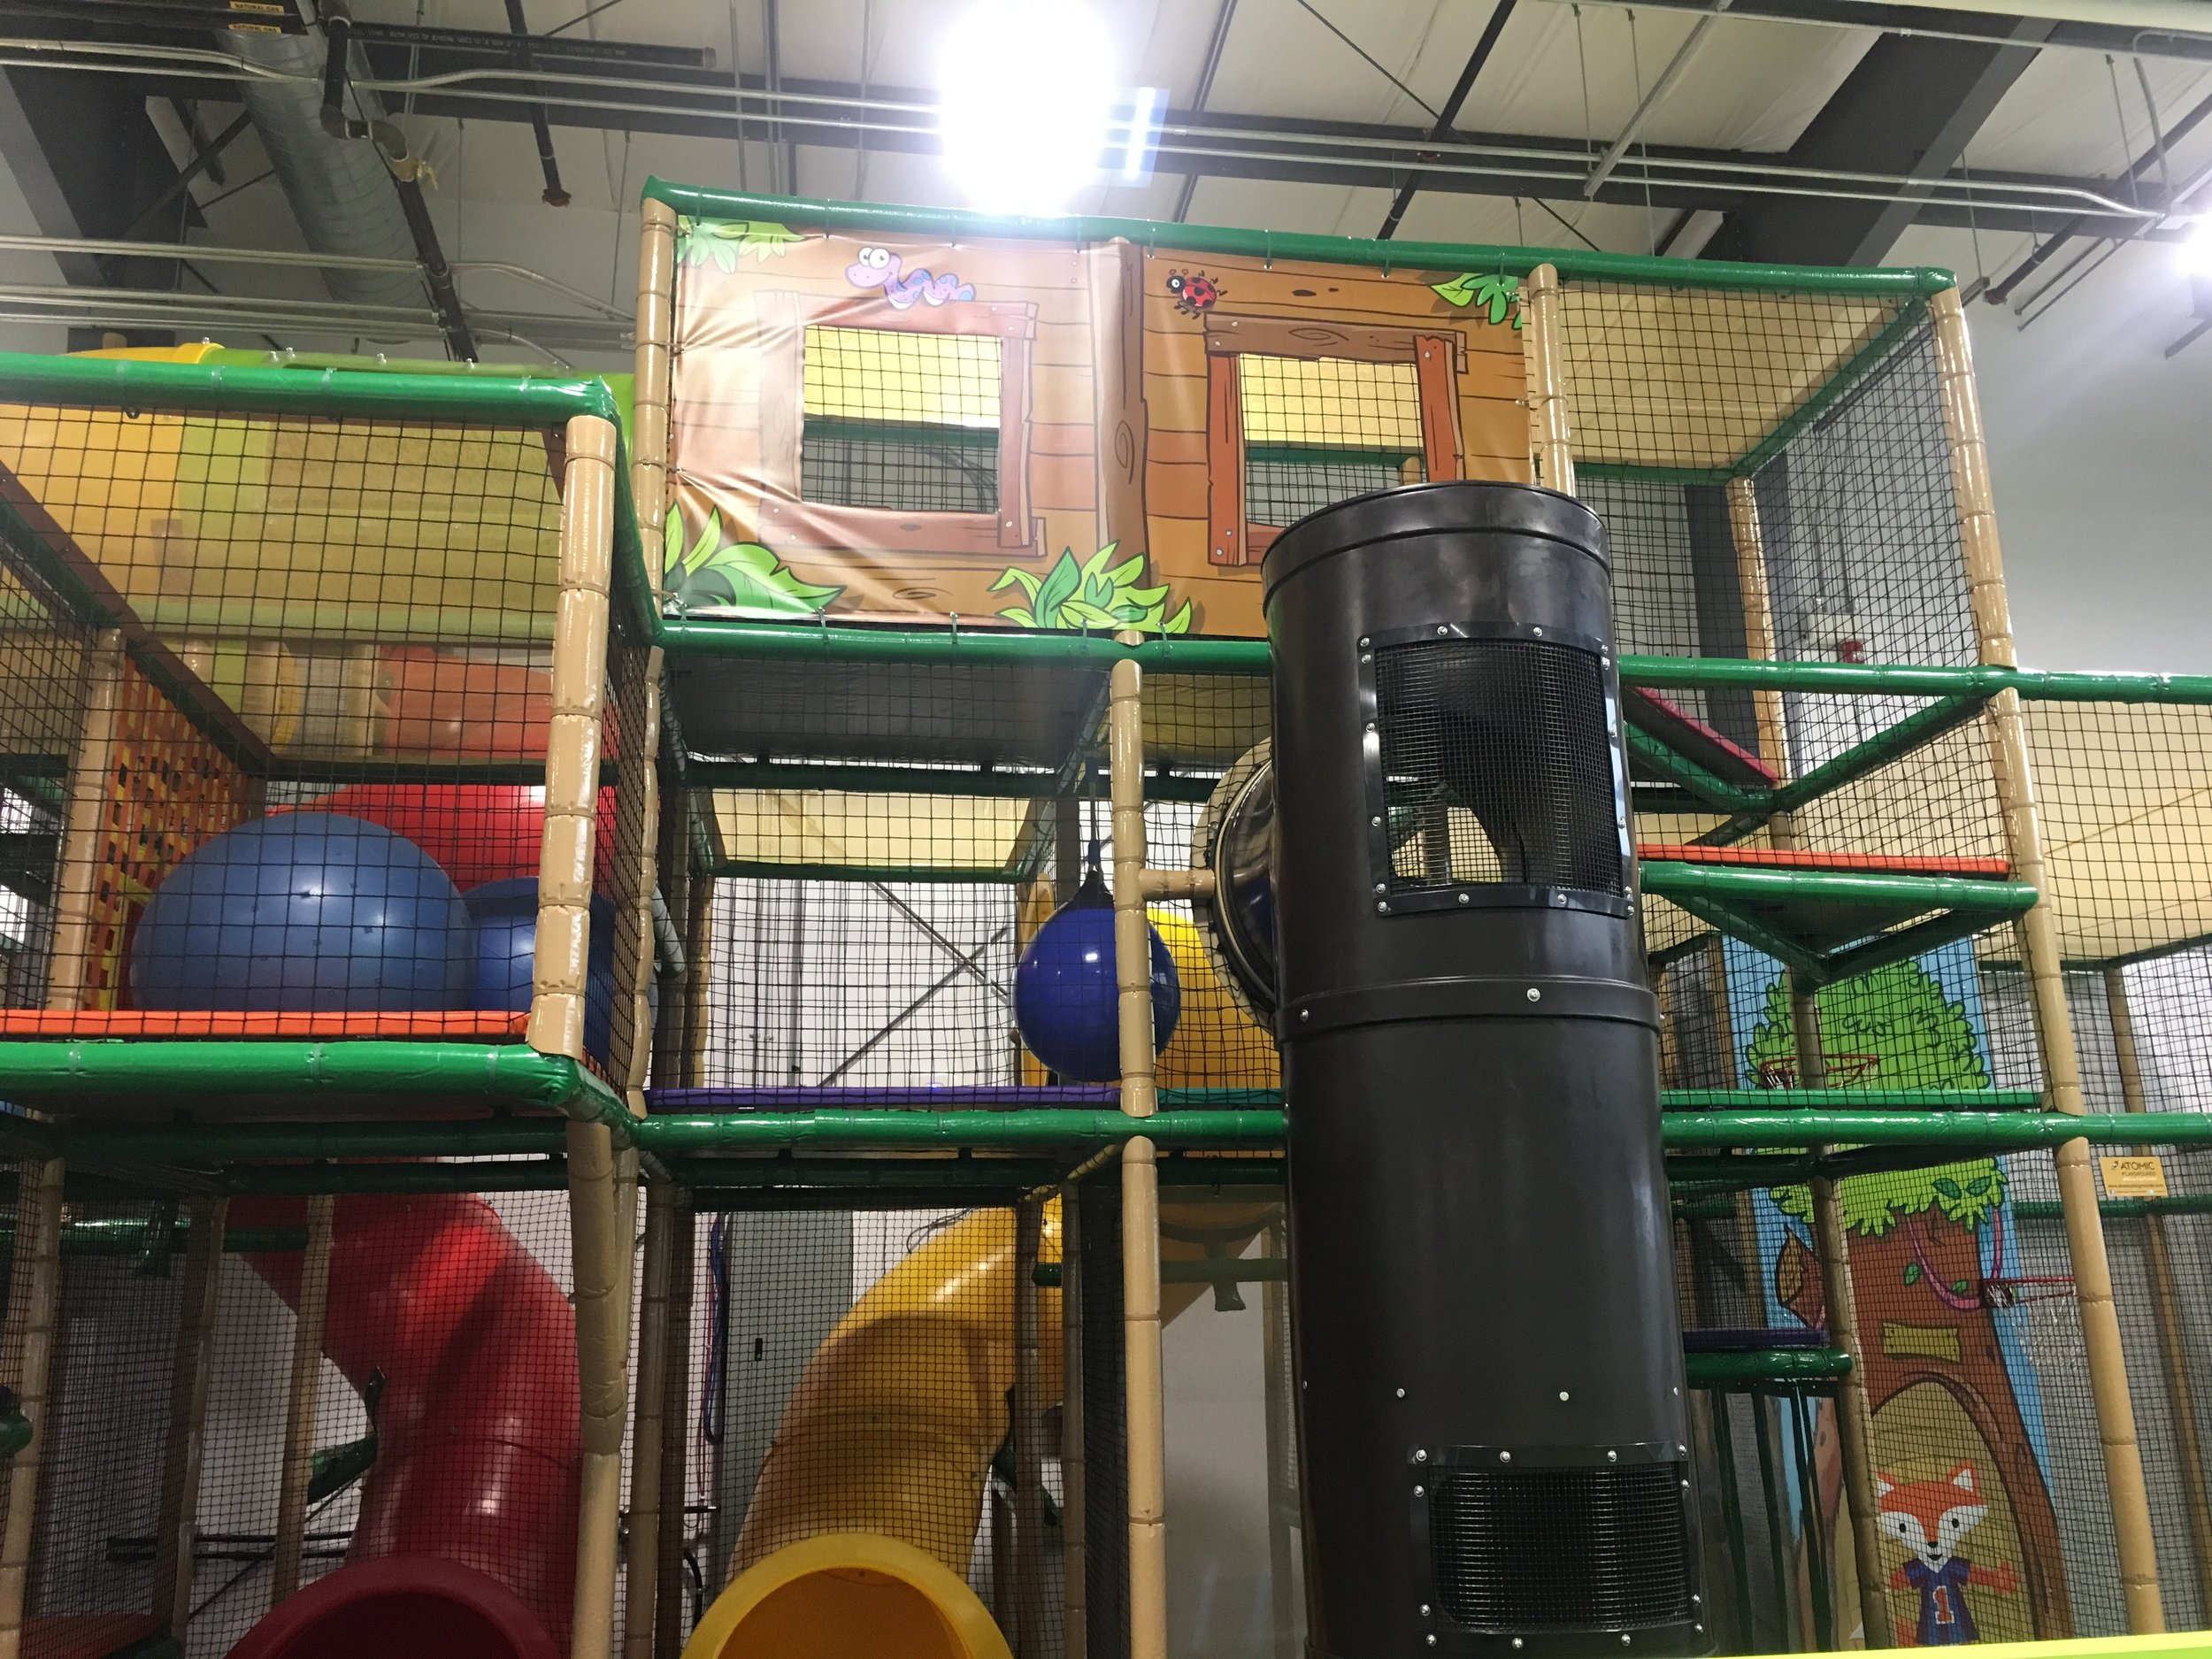 Play structure 4.JPG